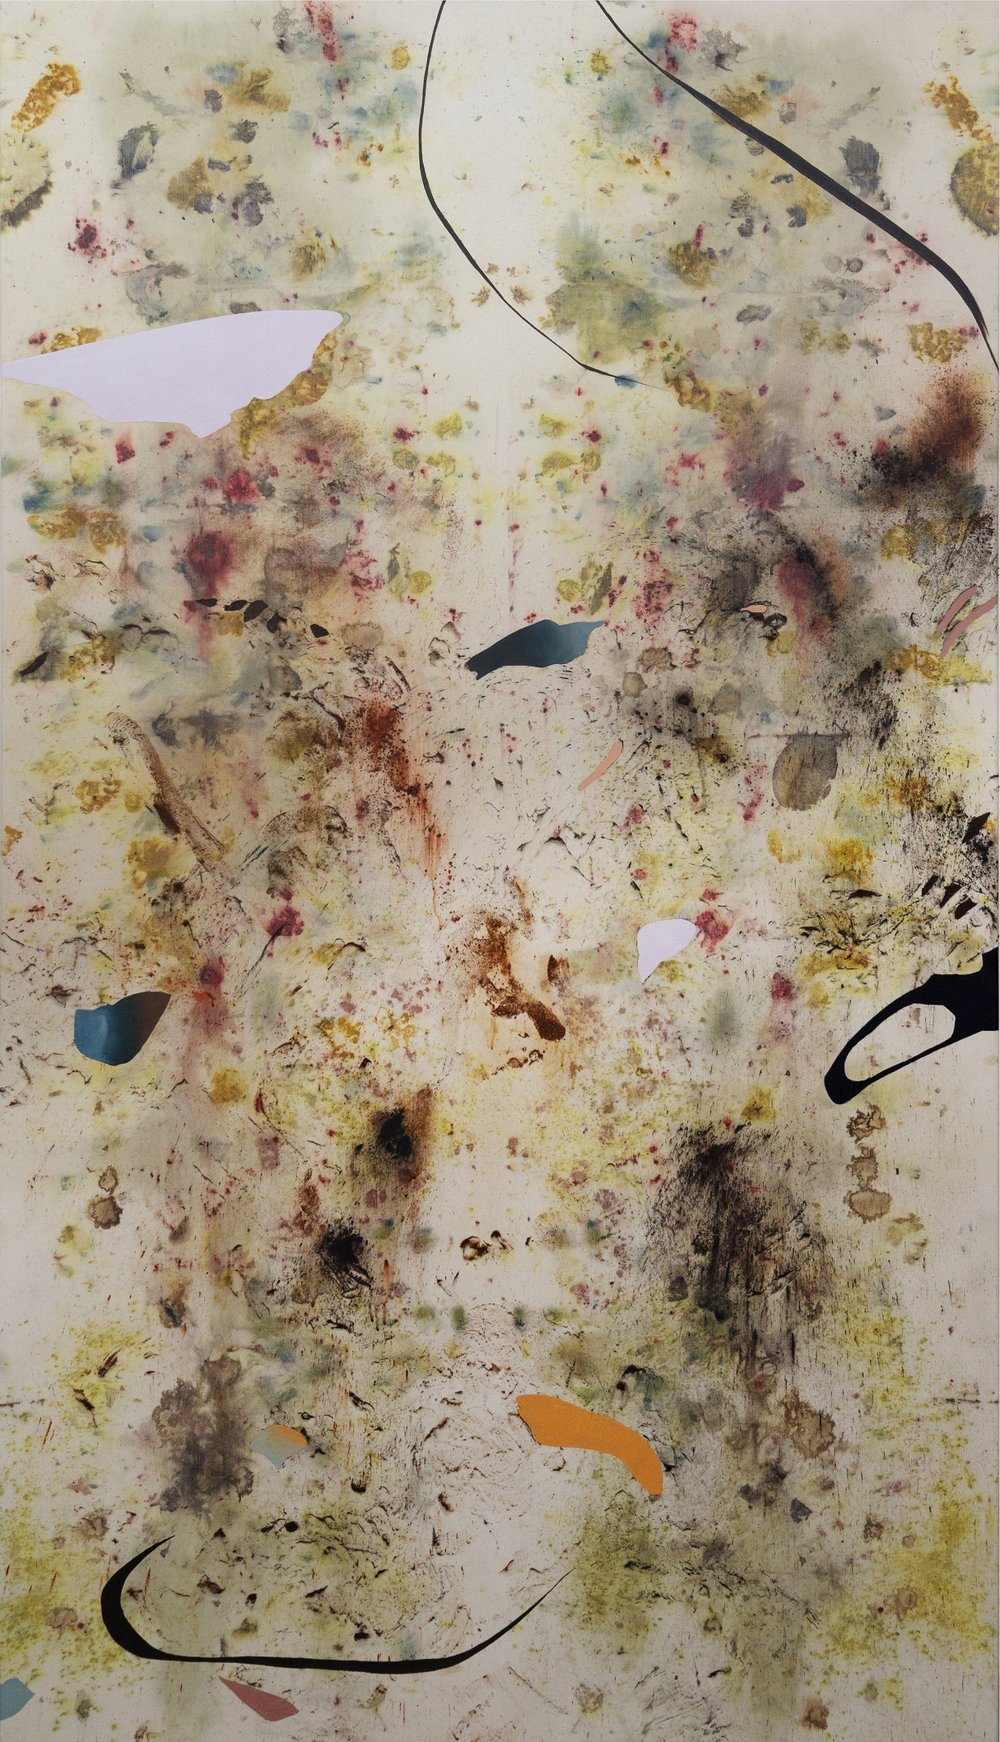 Ghosts of the Schrebergärten, Cold Wax Medium, Oil, Raw Pigments, Sand, Red Earth, Various Plant Materials (  including Acorns, Sumac Berries, Oak Leaves, Onion Skins, Tansy Flower, Madder Root, and Wildflowers  ) on Canvas, 81.5x45 inches, 2018